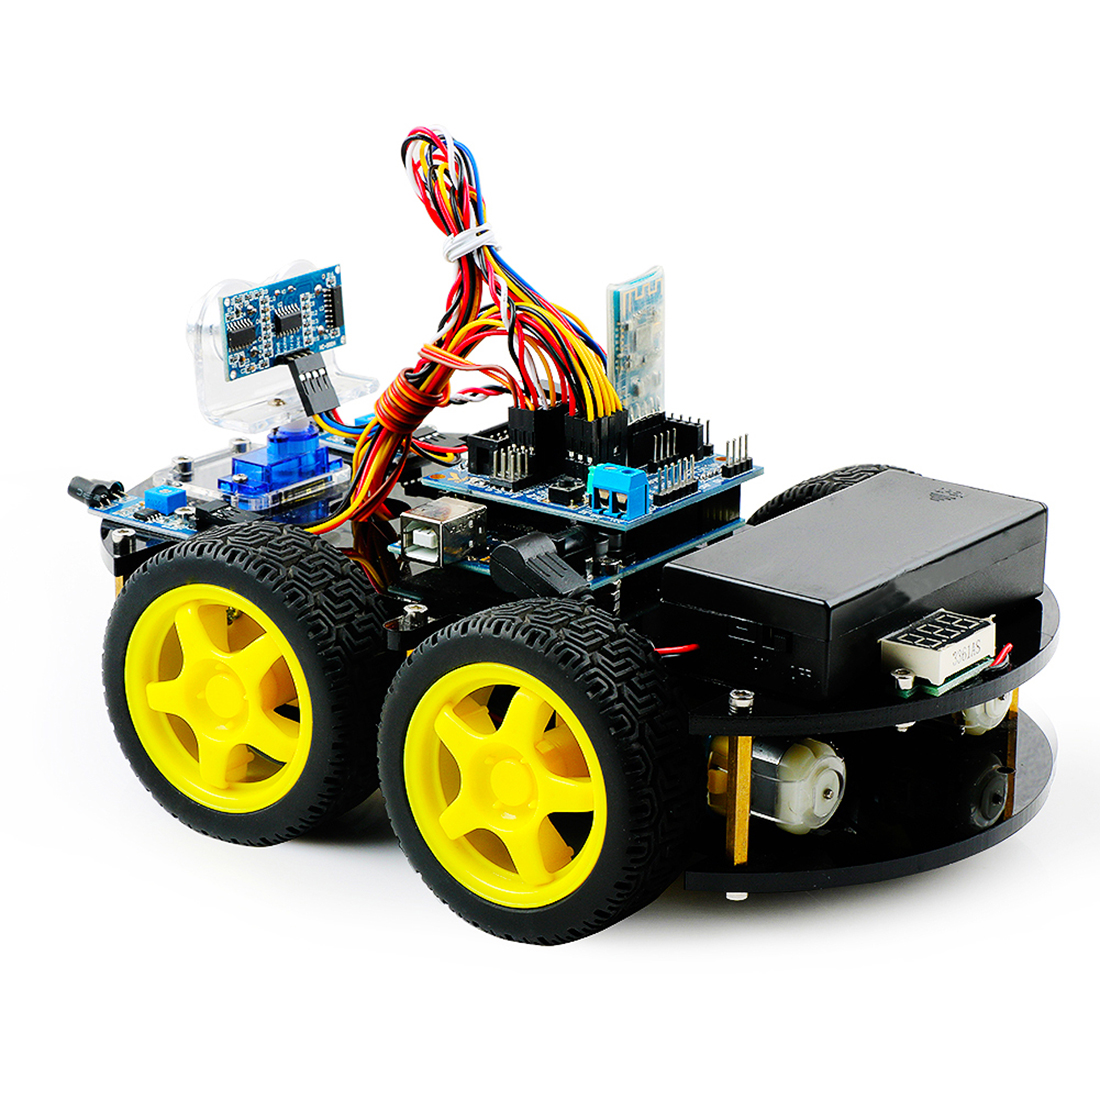 DIY Obstacle Avoidance Smart Programmable Robot Car Educational Learning Kit For Arduino For UNO